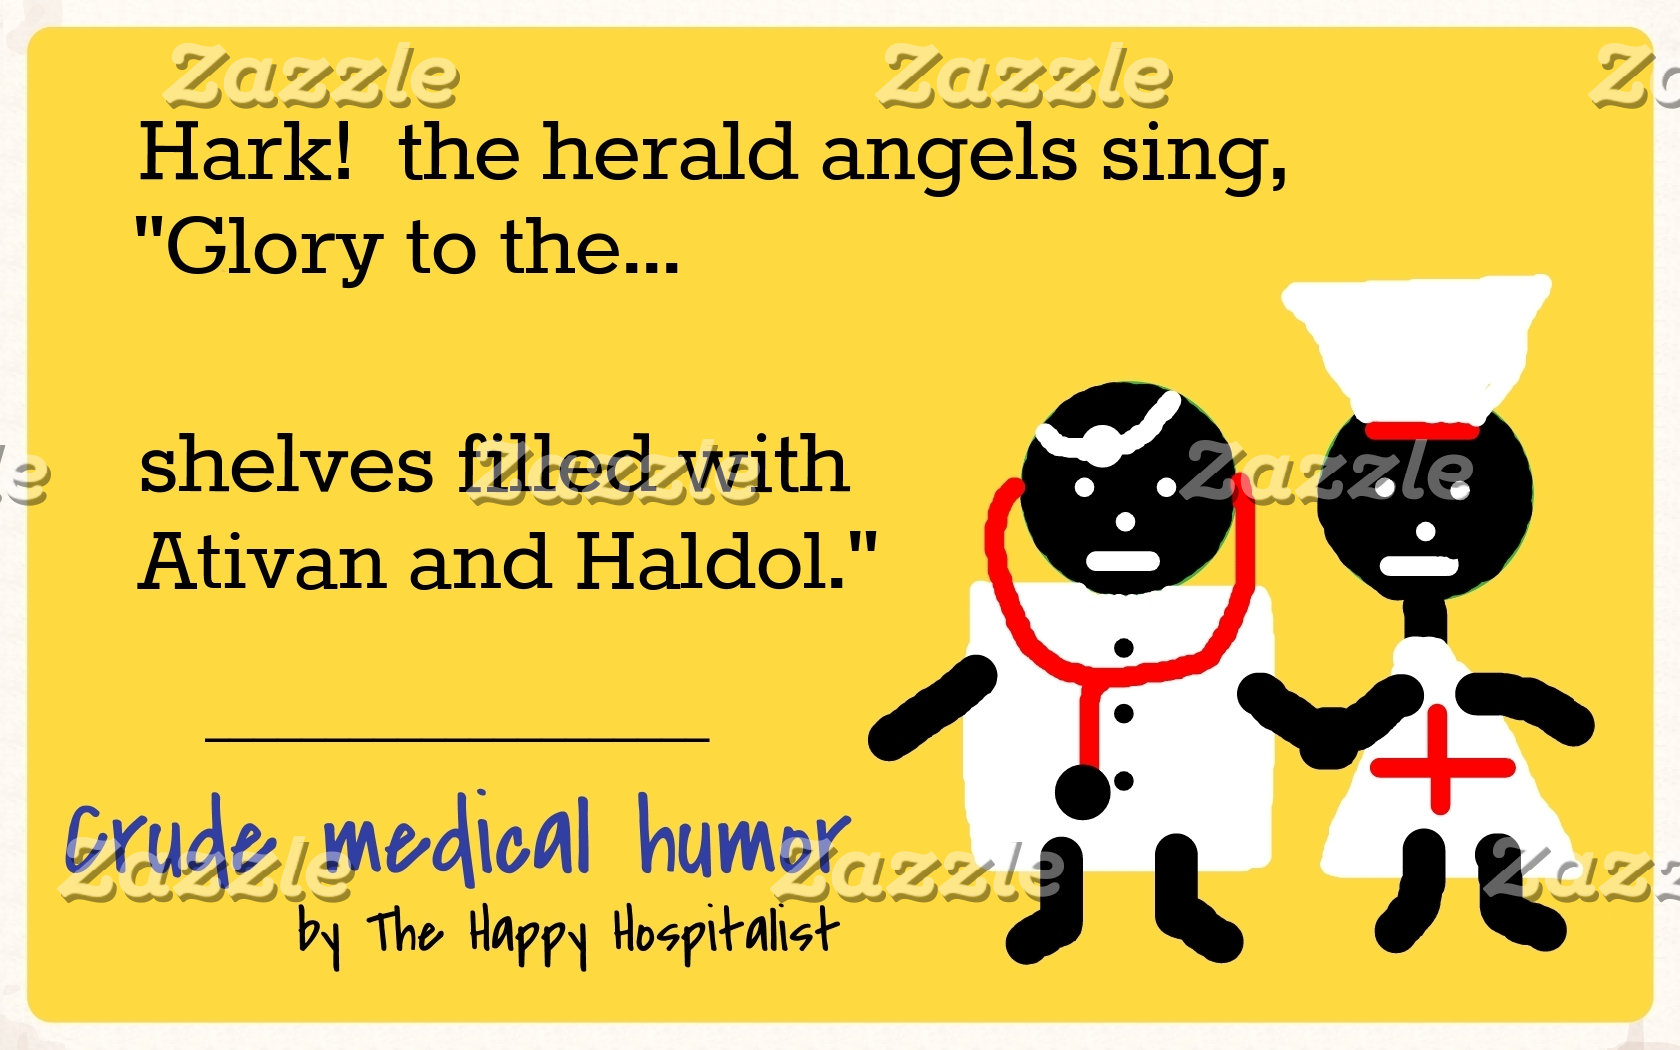 Hark!  the herald angels sing, Glory to the...